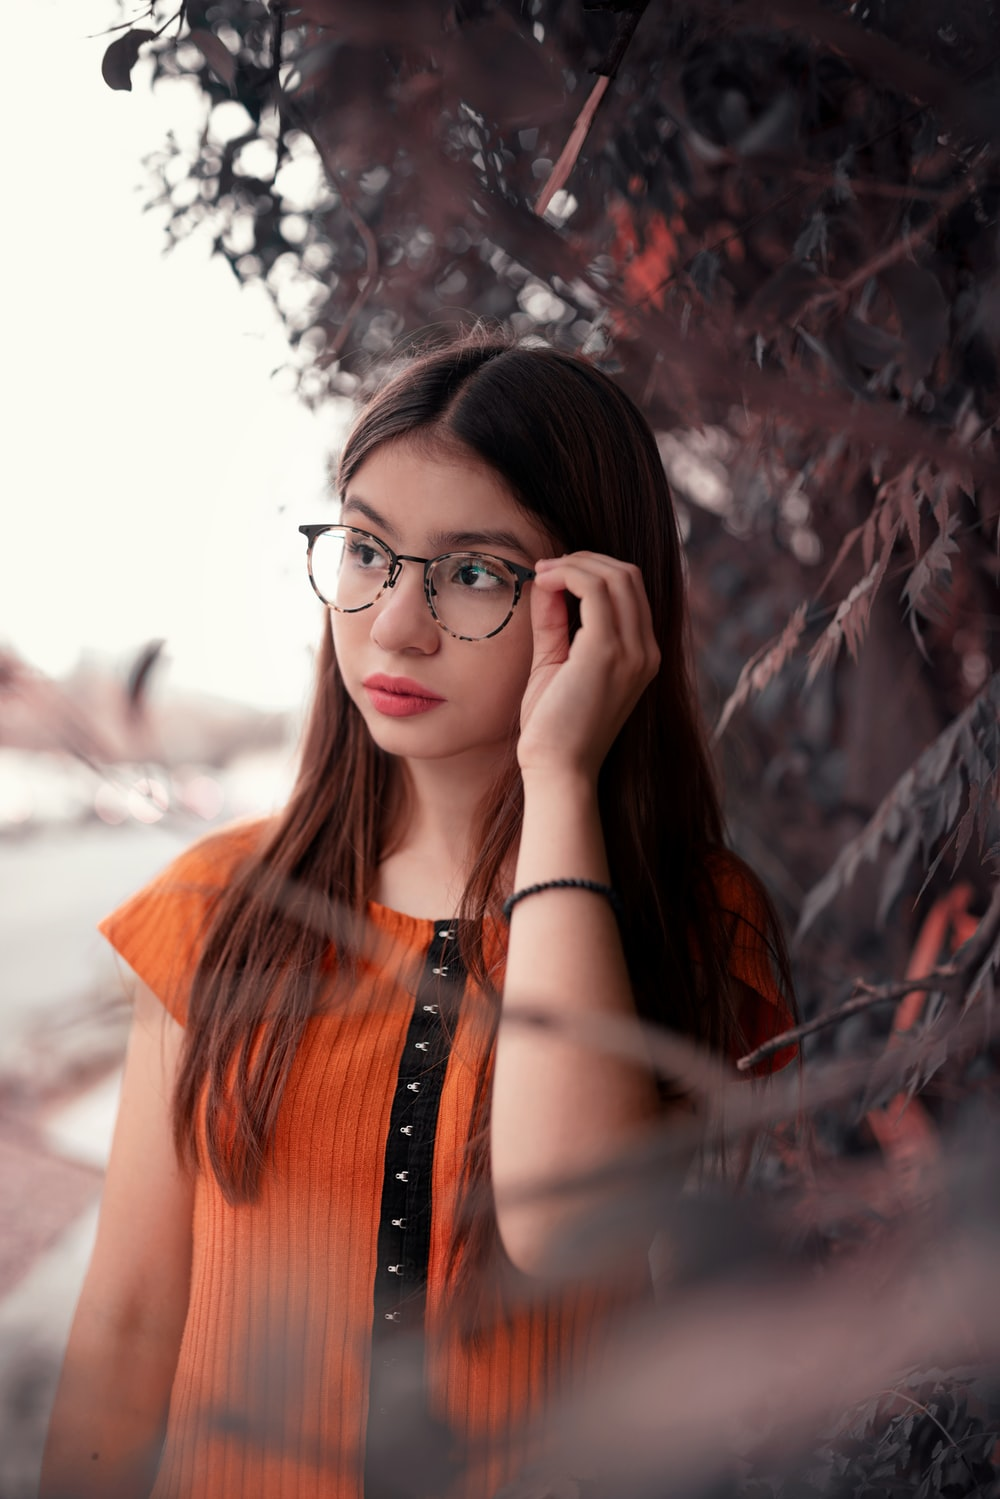 woman in orange and black top and eyeglasses